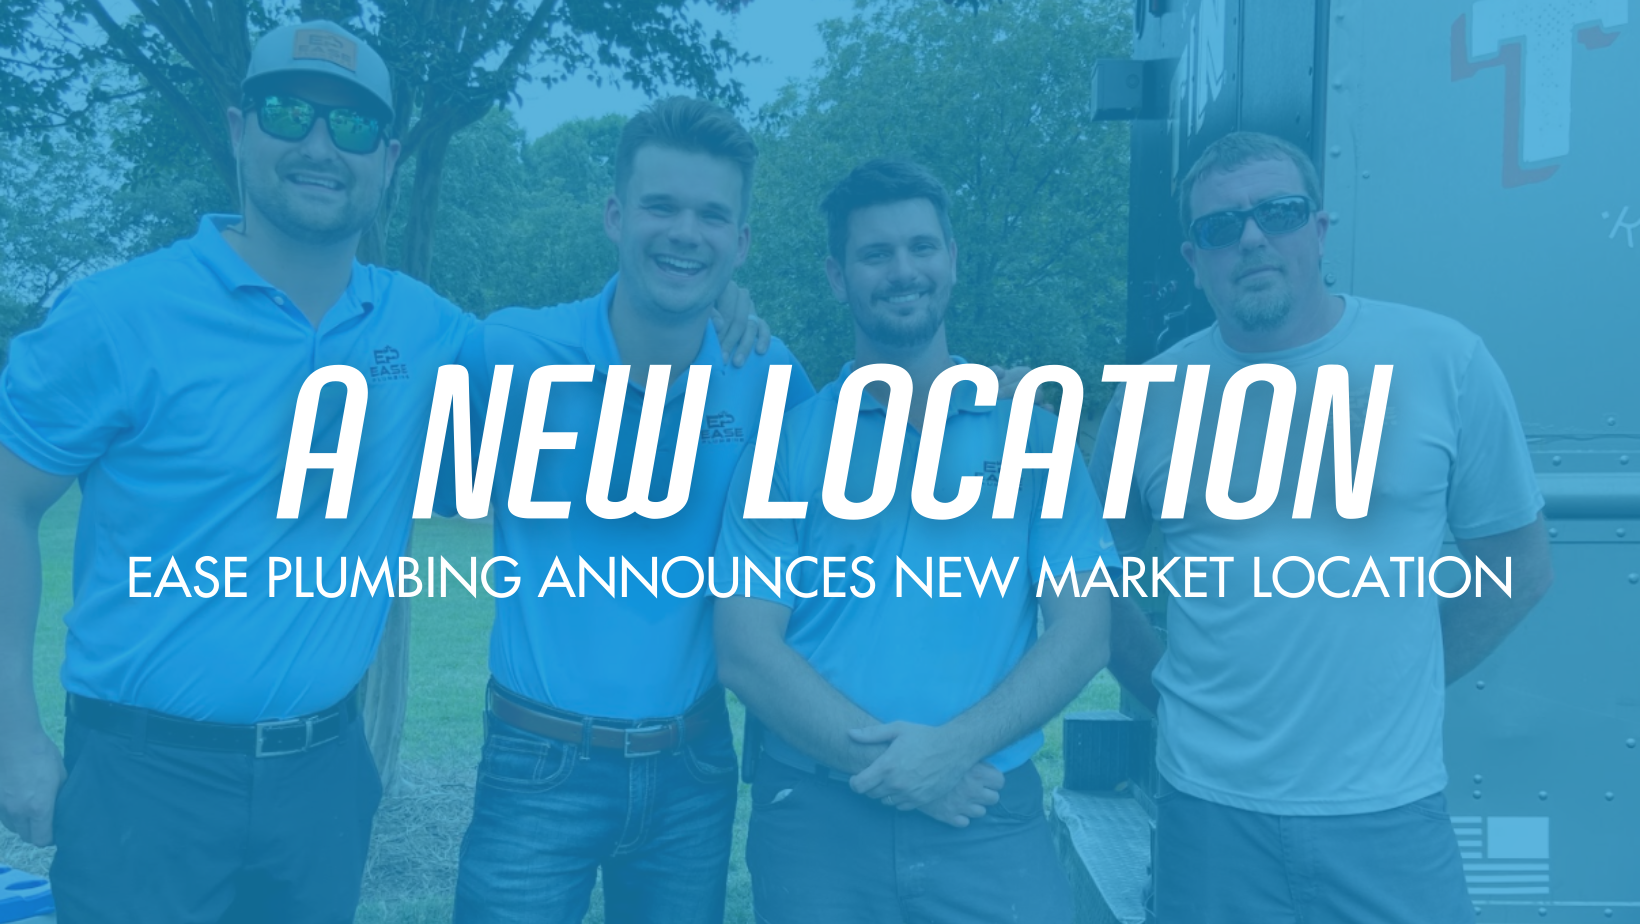 Ease Plumbing announces its third location in Monroe, North Carolina